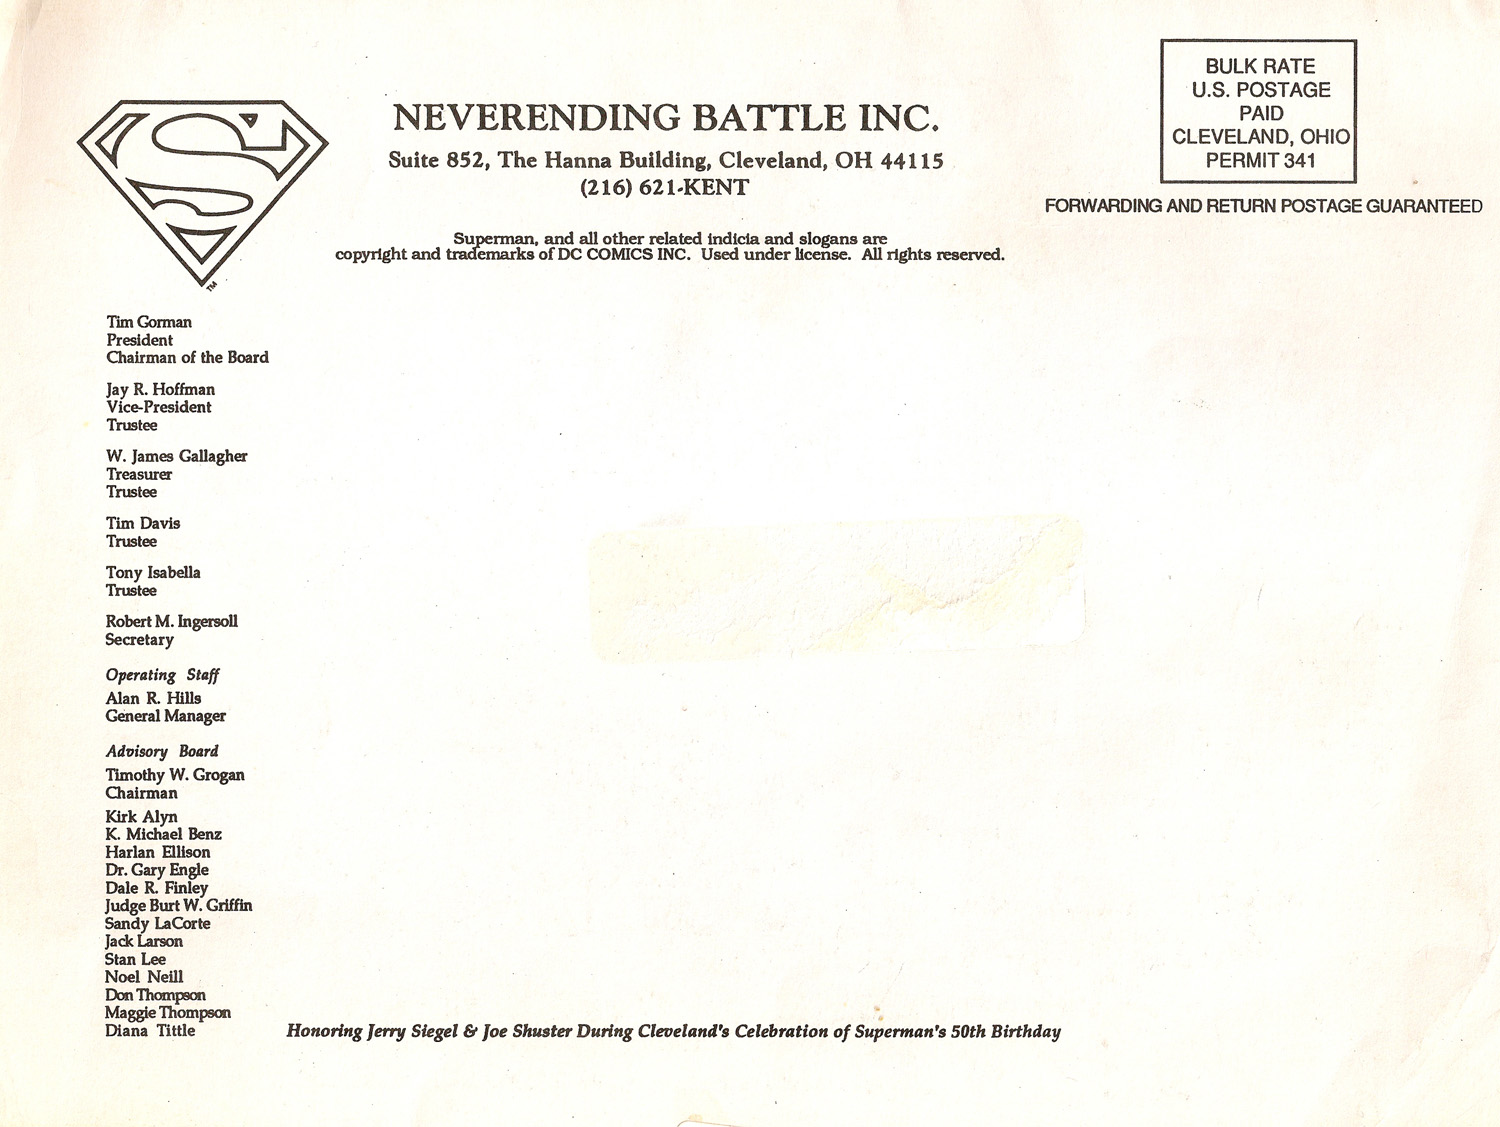 ACQUISITIONS – INTERNATIONAL SUPERMAN EXPOSITION ORDER FORM ...